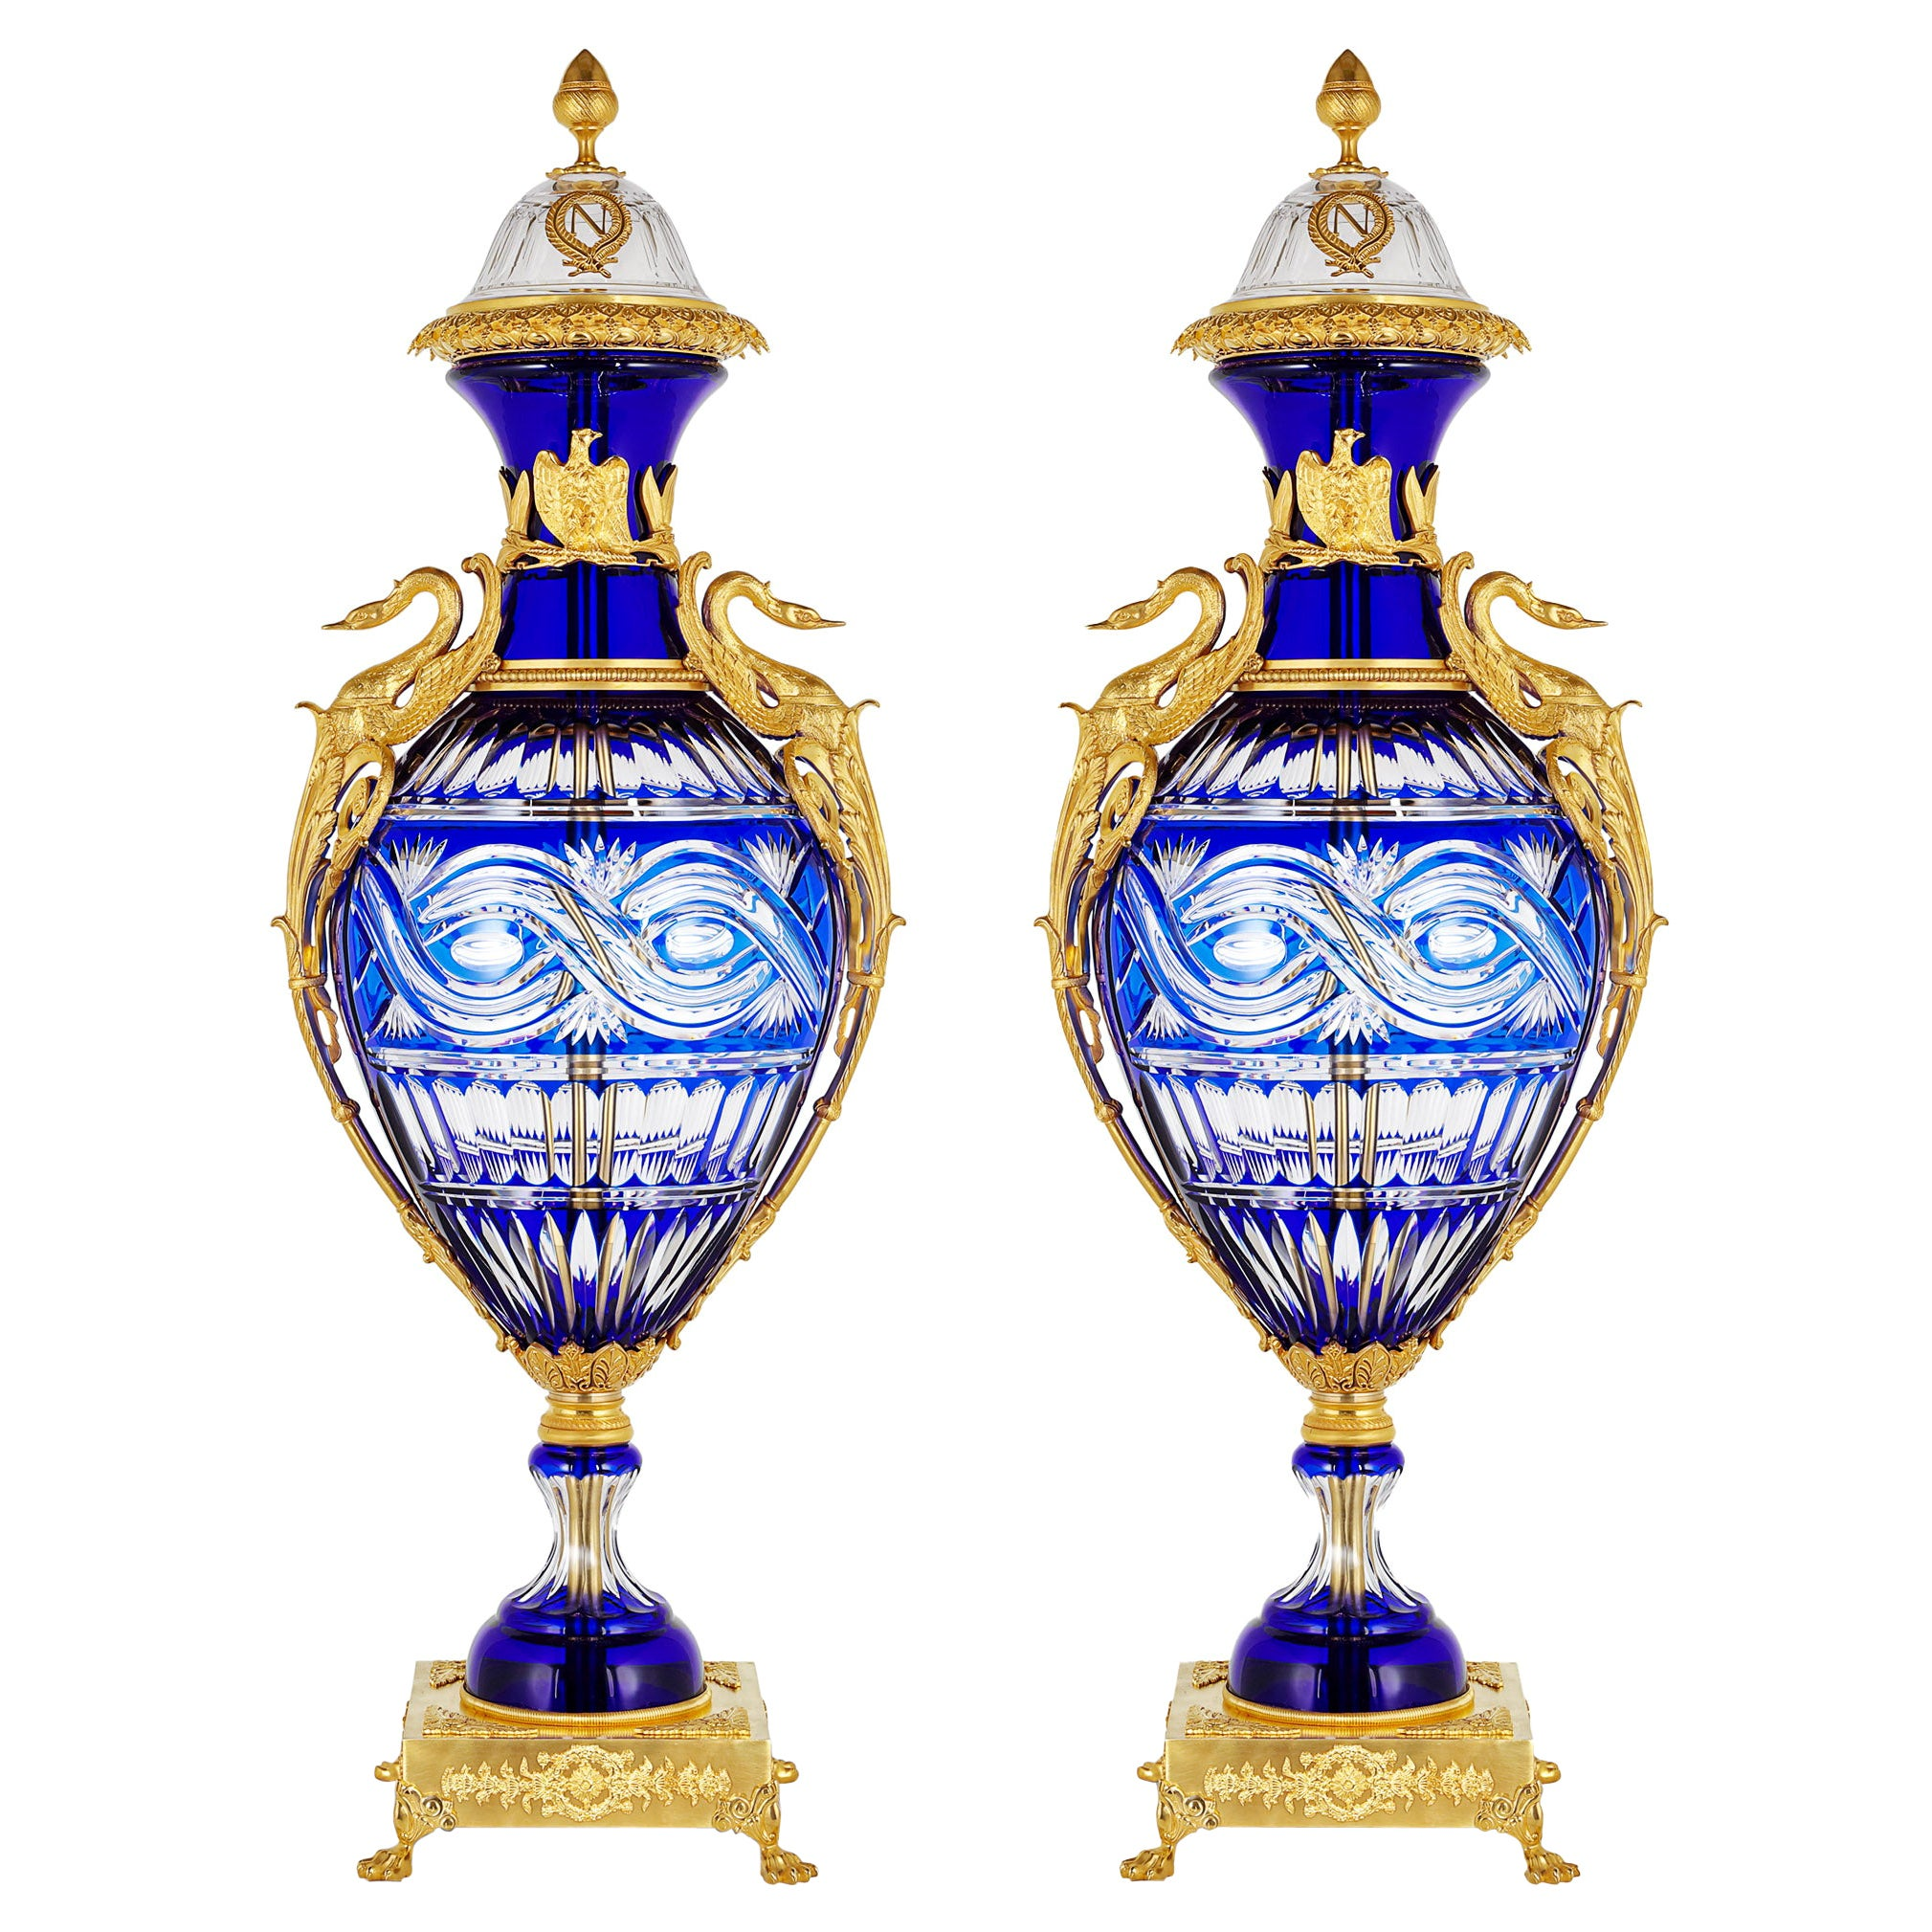 Pair of Large Neoclassical Style Cut Glass & Ormolu Vases